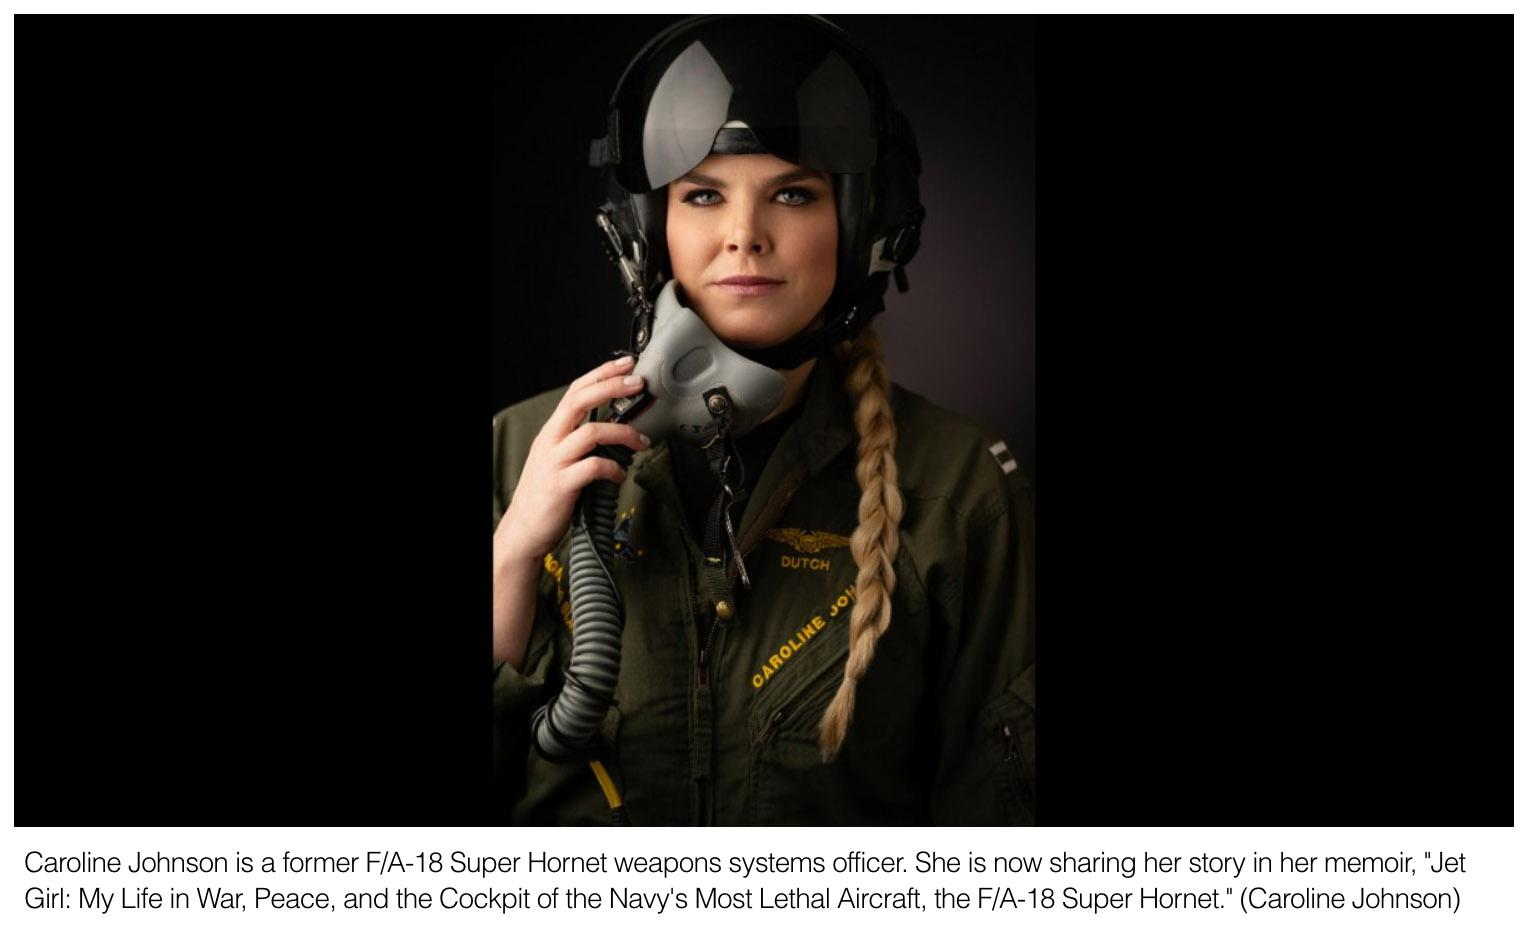 Jet Girls story fighting ISIS in the cockpit of an FA-18 Super Hornet